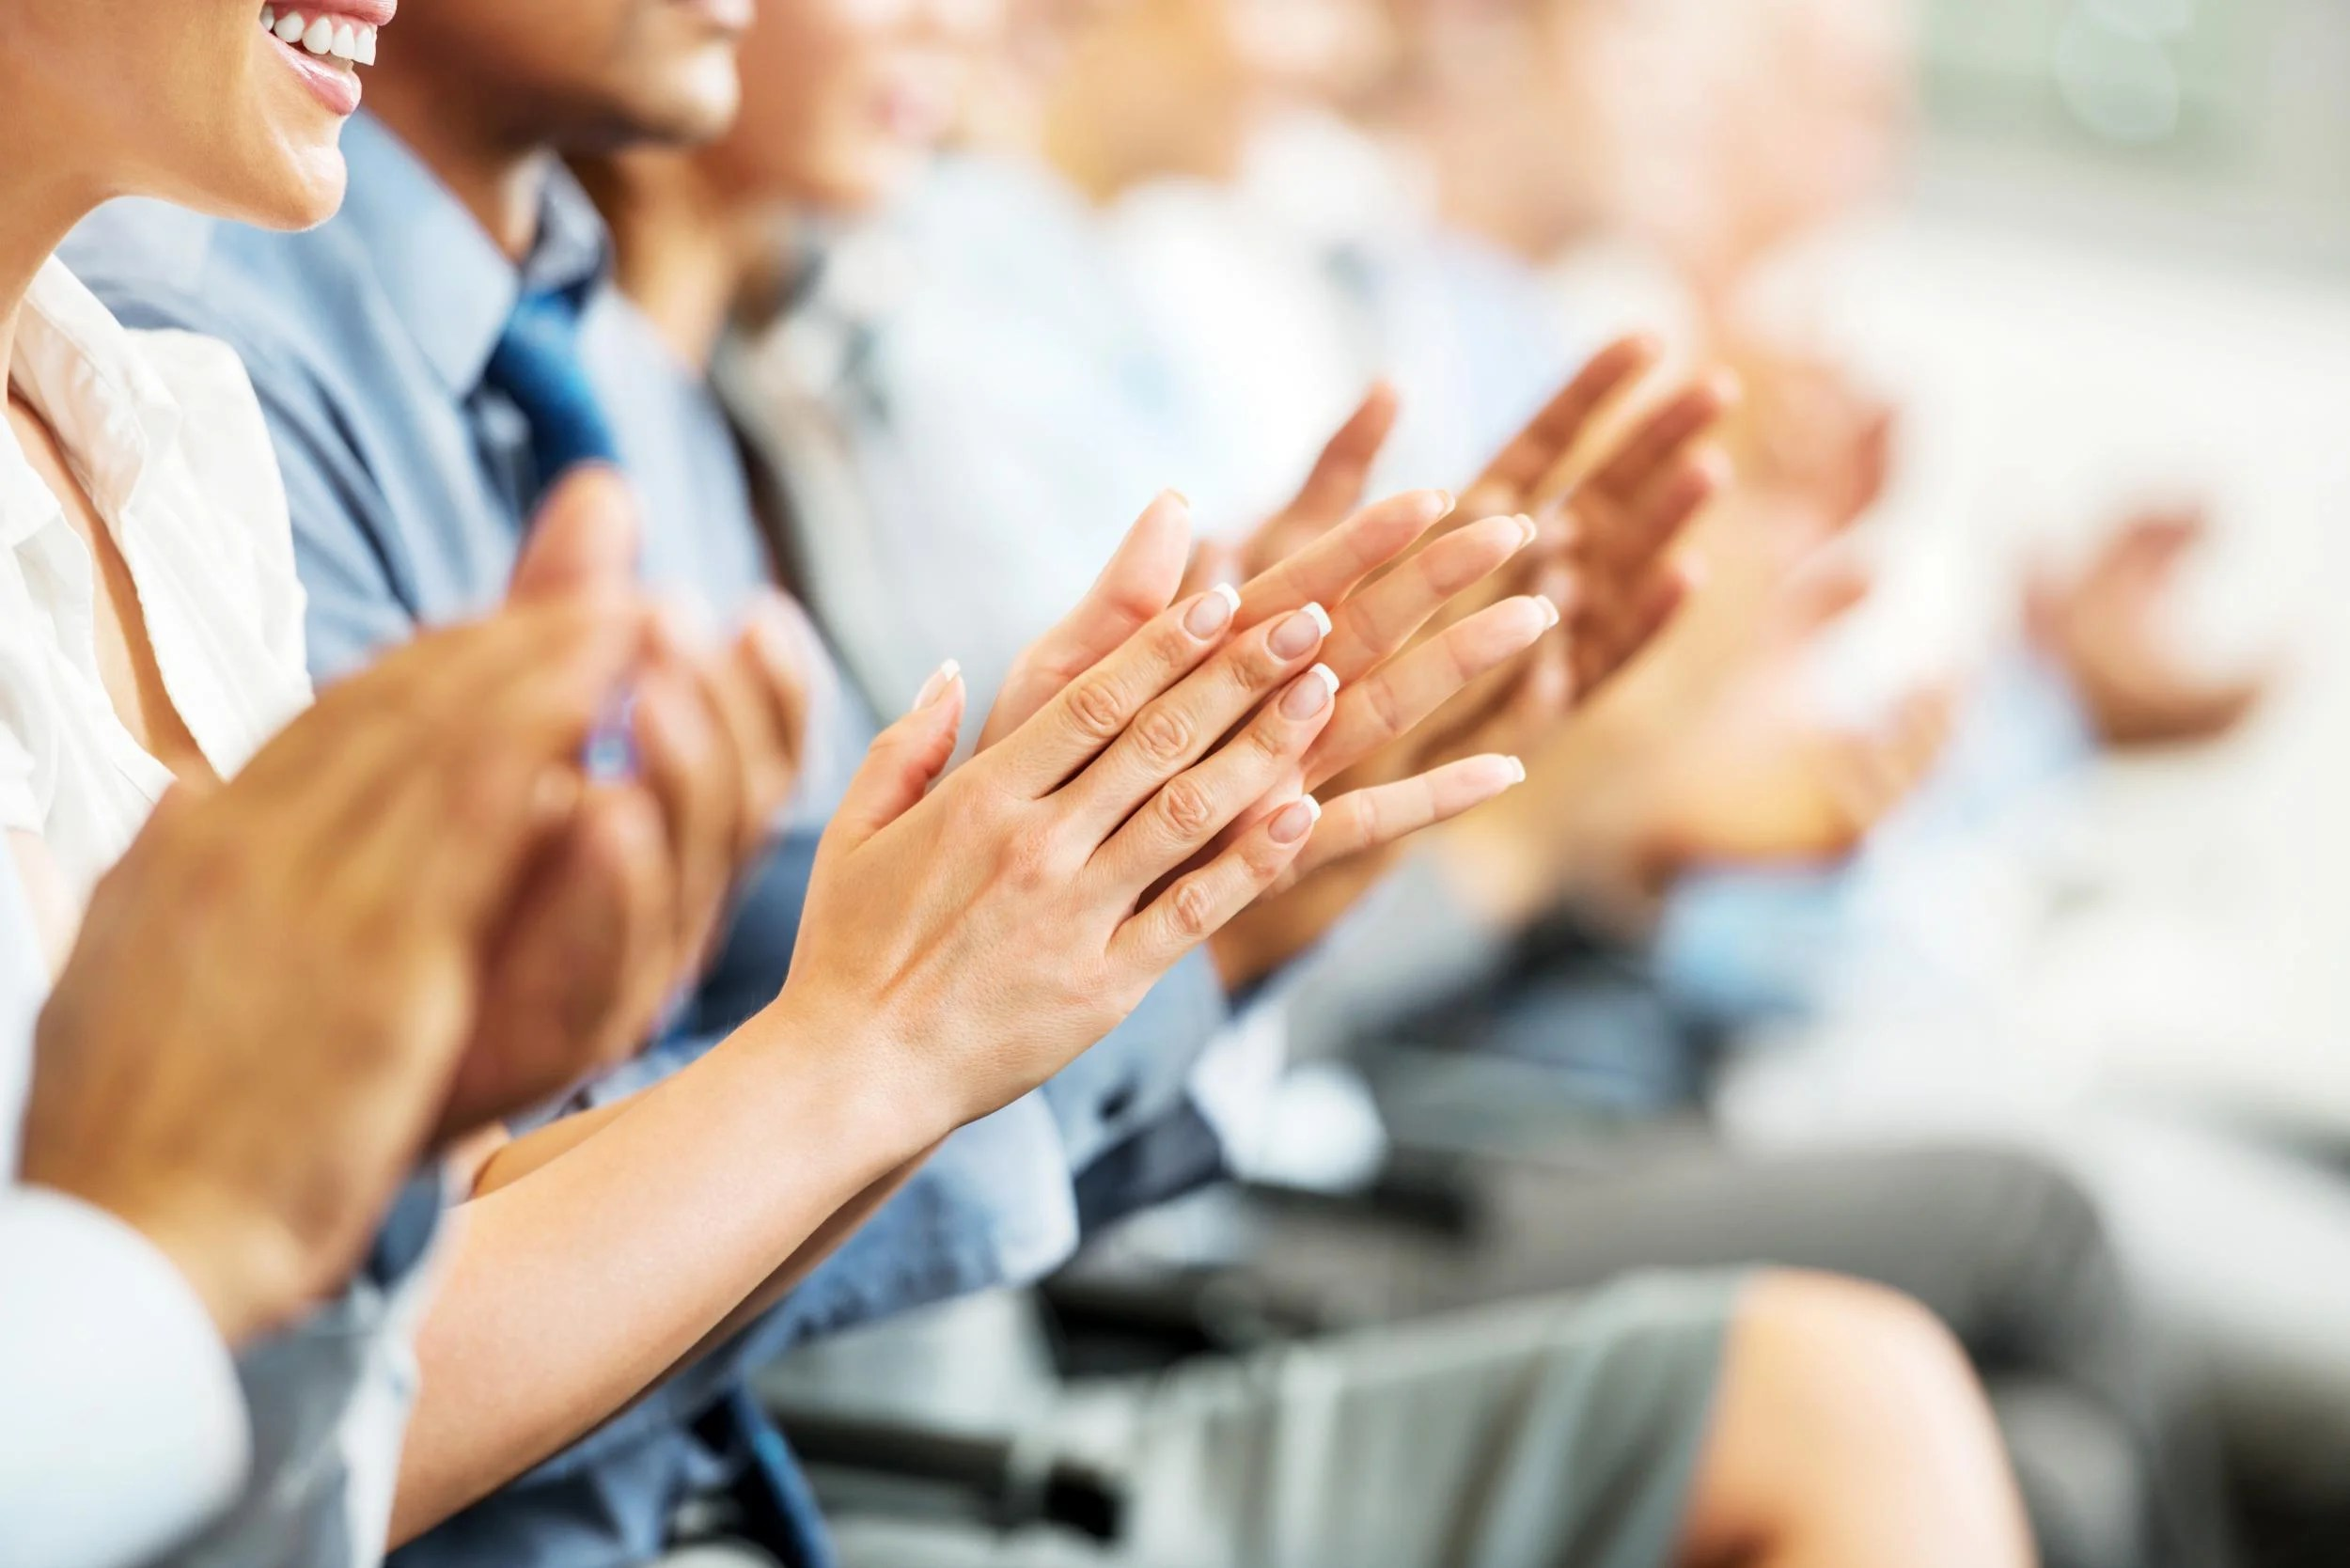 Students To Replace Clapping With Jazz Hands At Events To Make Them More Inclusive